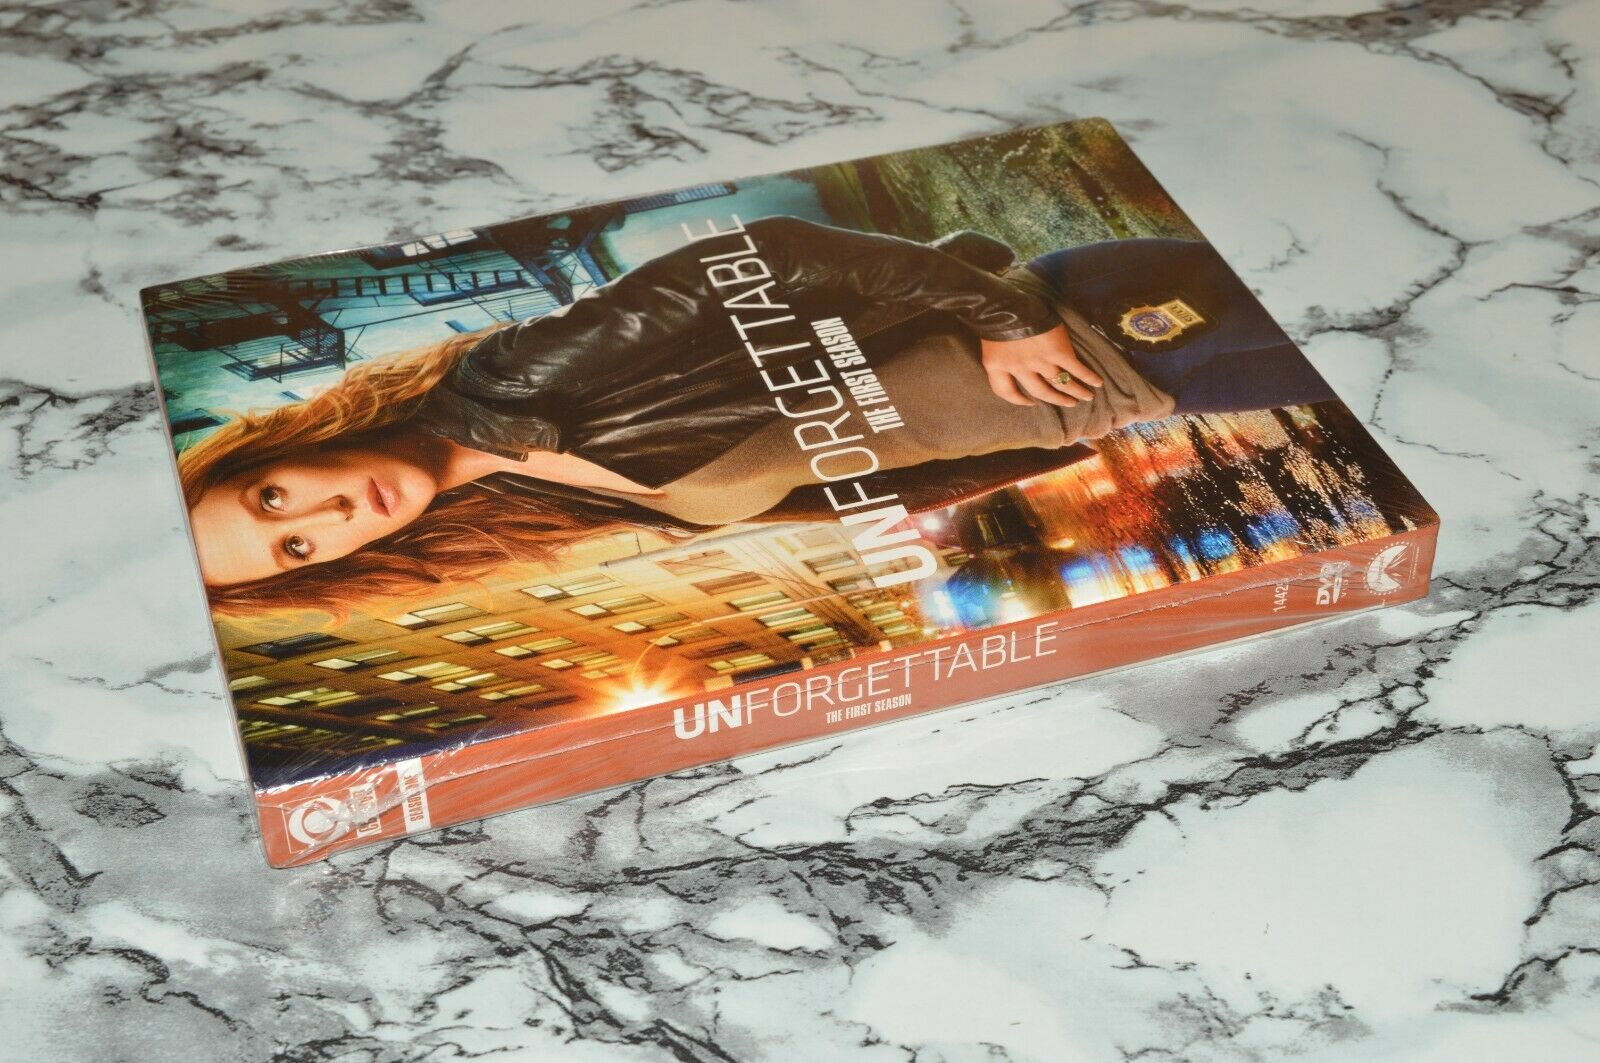 NEW - Unforgettable - The First One / 1 Season 6-Disc DVD Set, 2011 -- CBS - $16.91